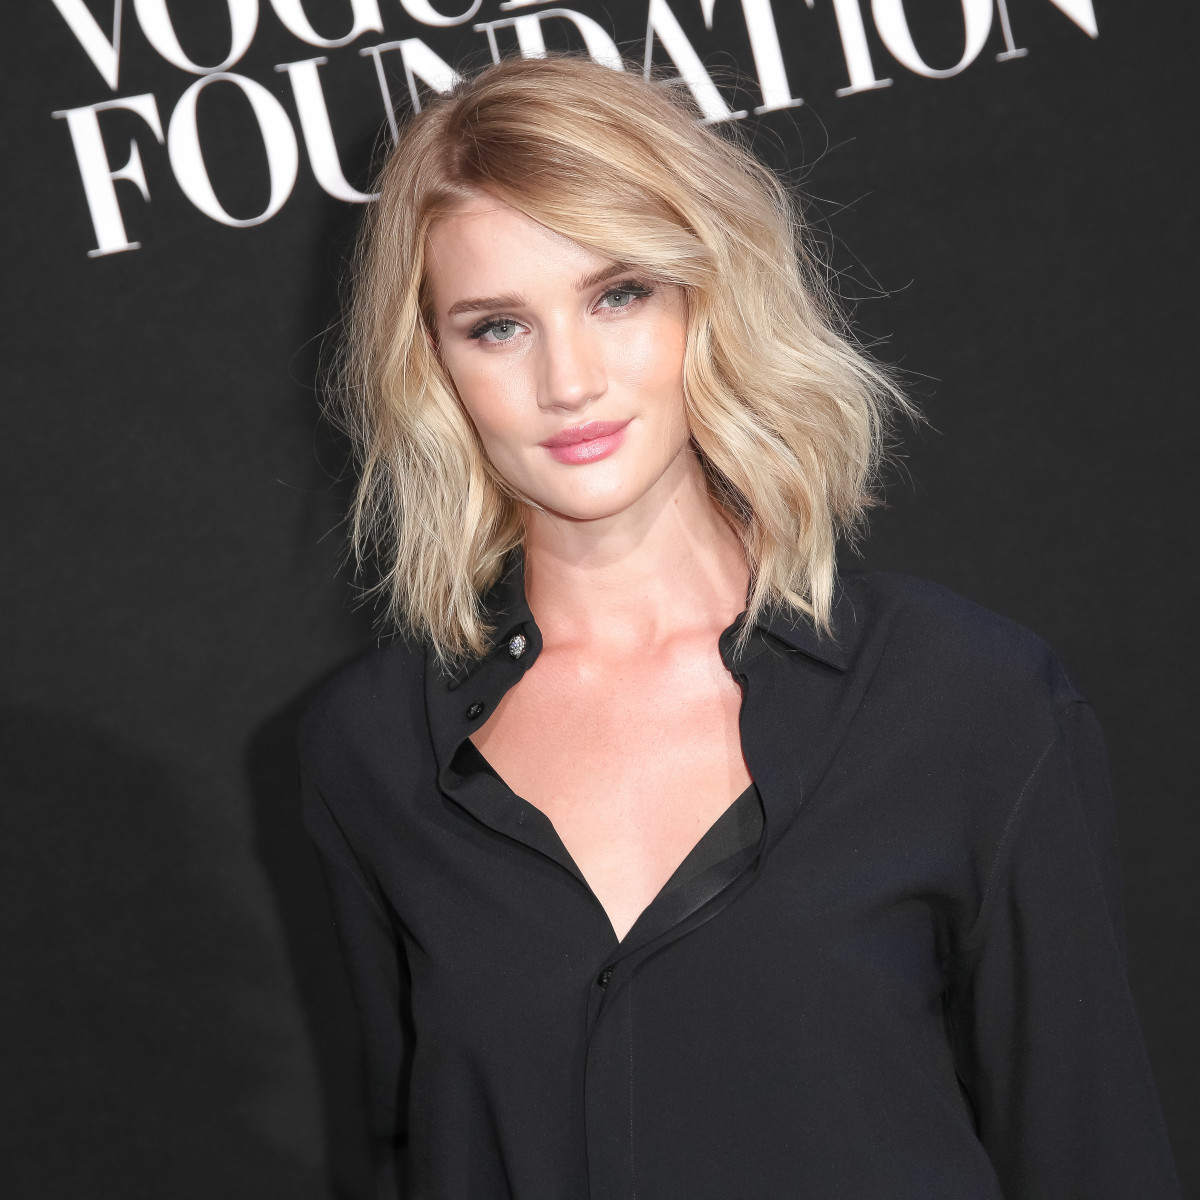 Rosie Huntington-Whiteley, Vogue Paris Foundation Gala, 2015